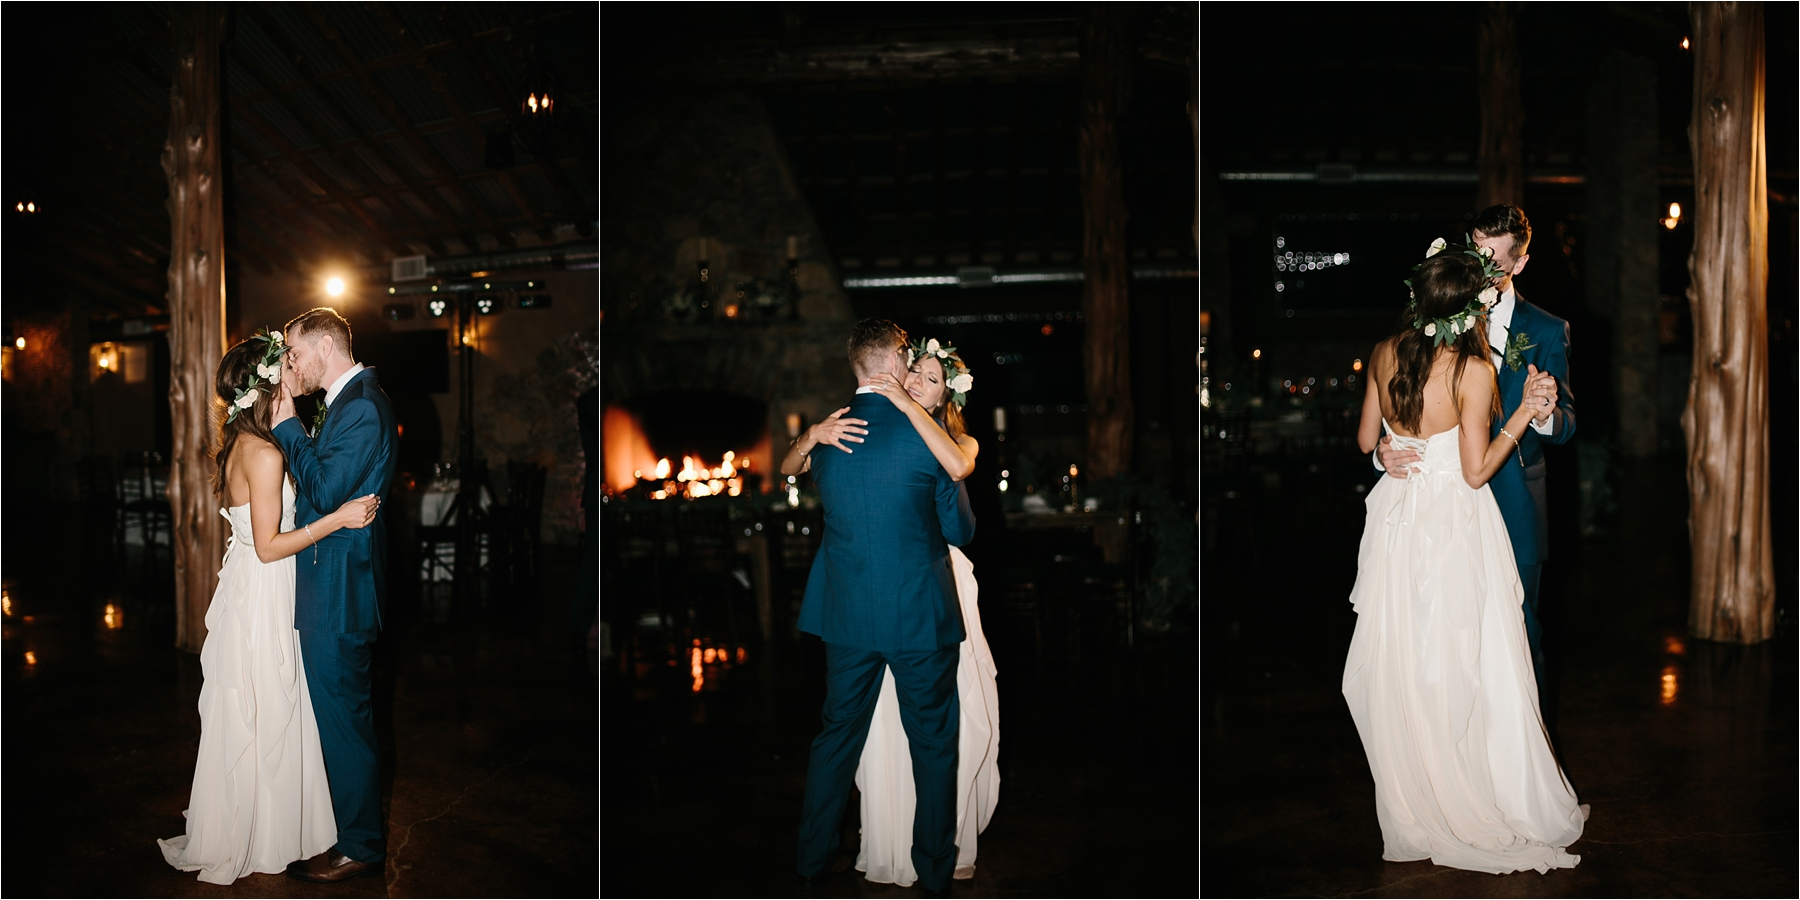 Lauren + Matt __ an intimate, emotional, blush pink, navy blue, and greenery toned wedding accents at the Brooks at Weatherford by North Texas Wedding Photographer Rachel Meagan Photography166